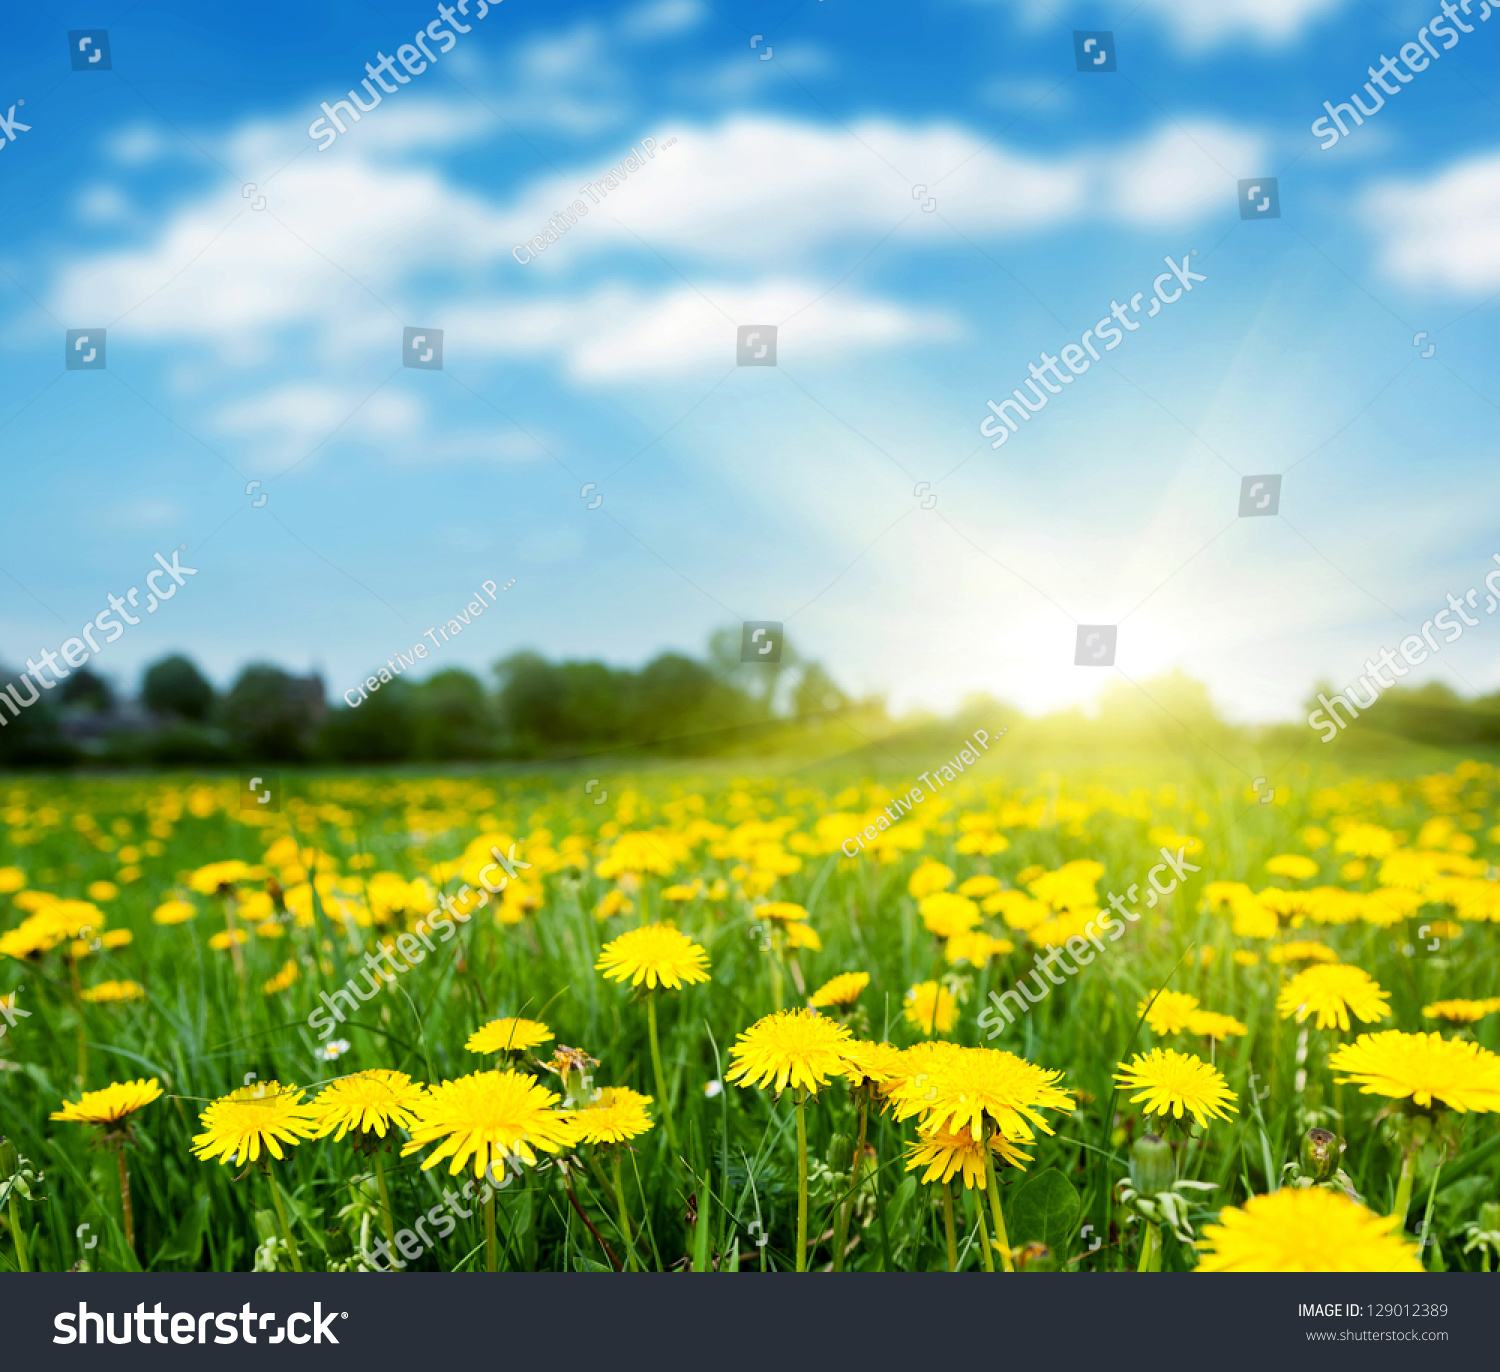 LET'S CHAT! - Page 2 Stock-photo-spring-field-with-dandelions-on-bright-sunny-day-129012389